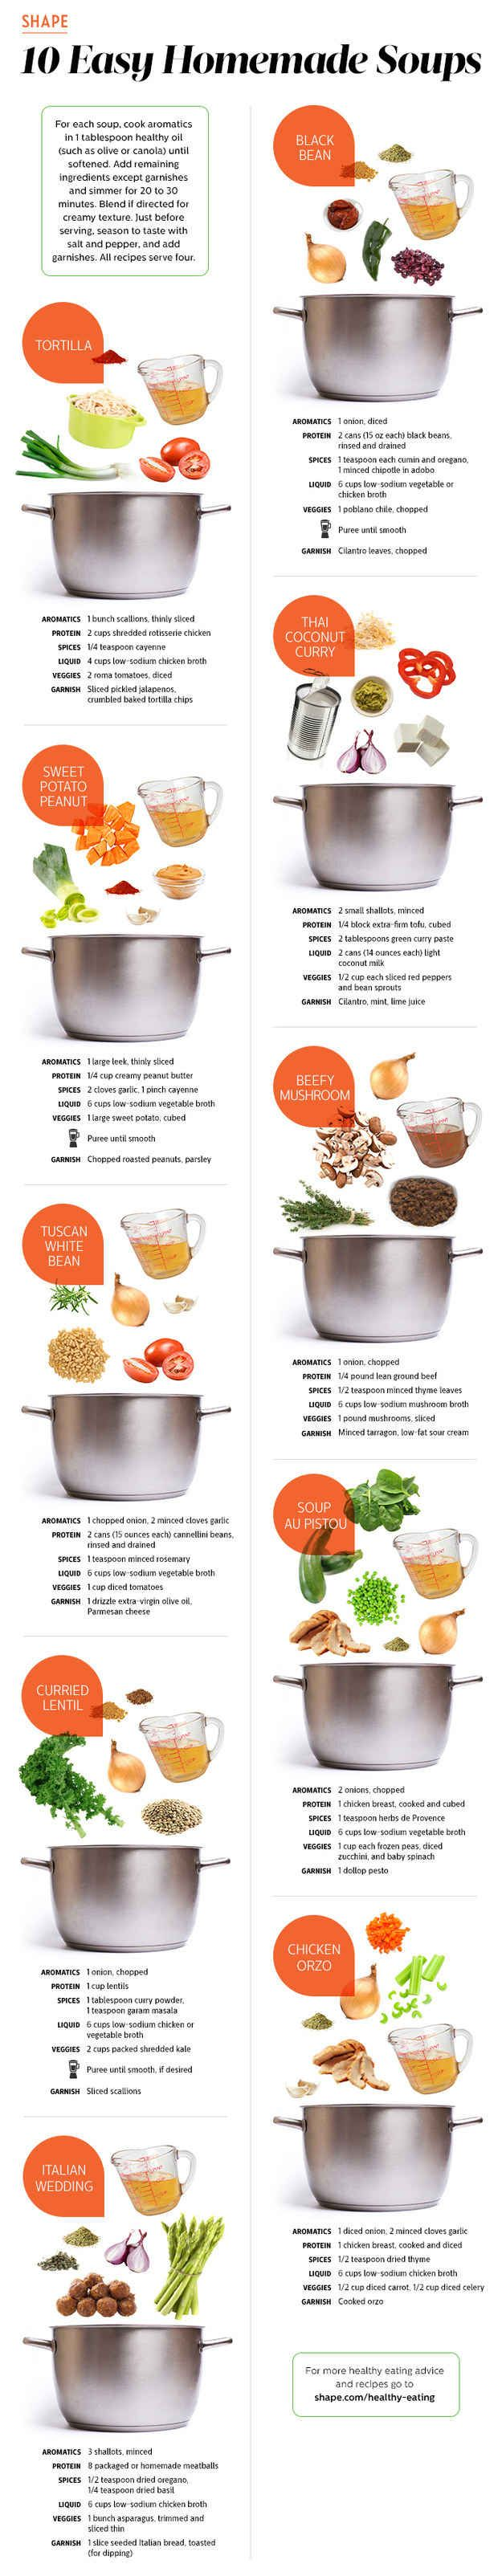 For making yummy, healthy soups.